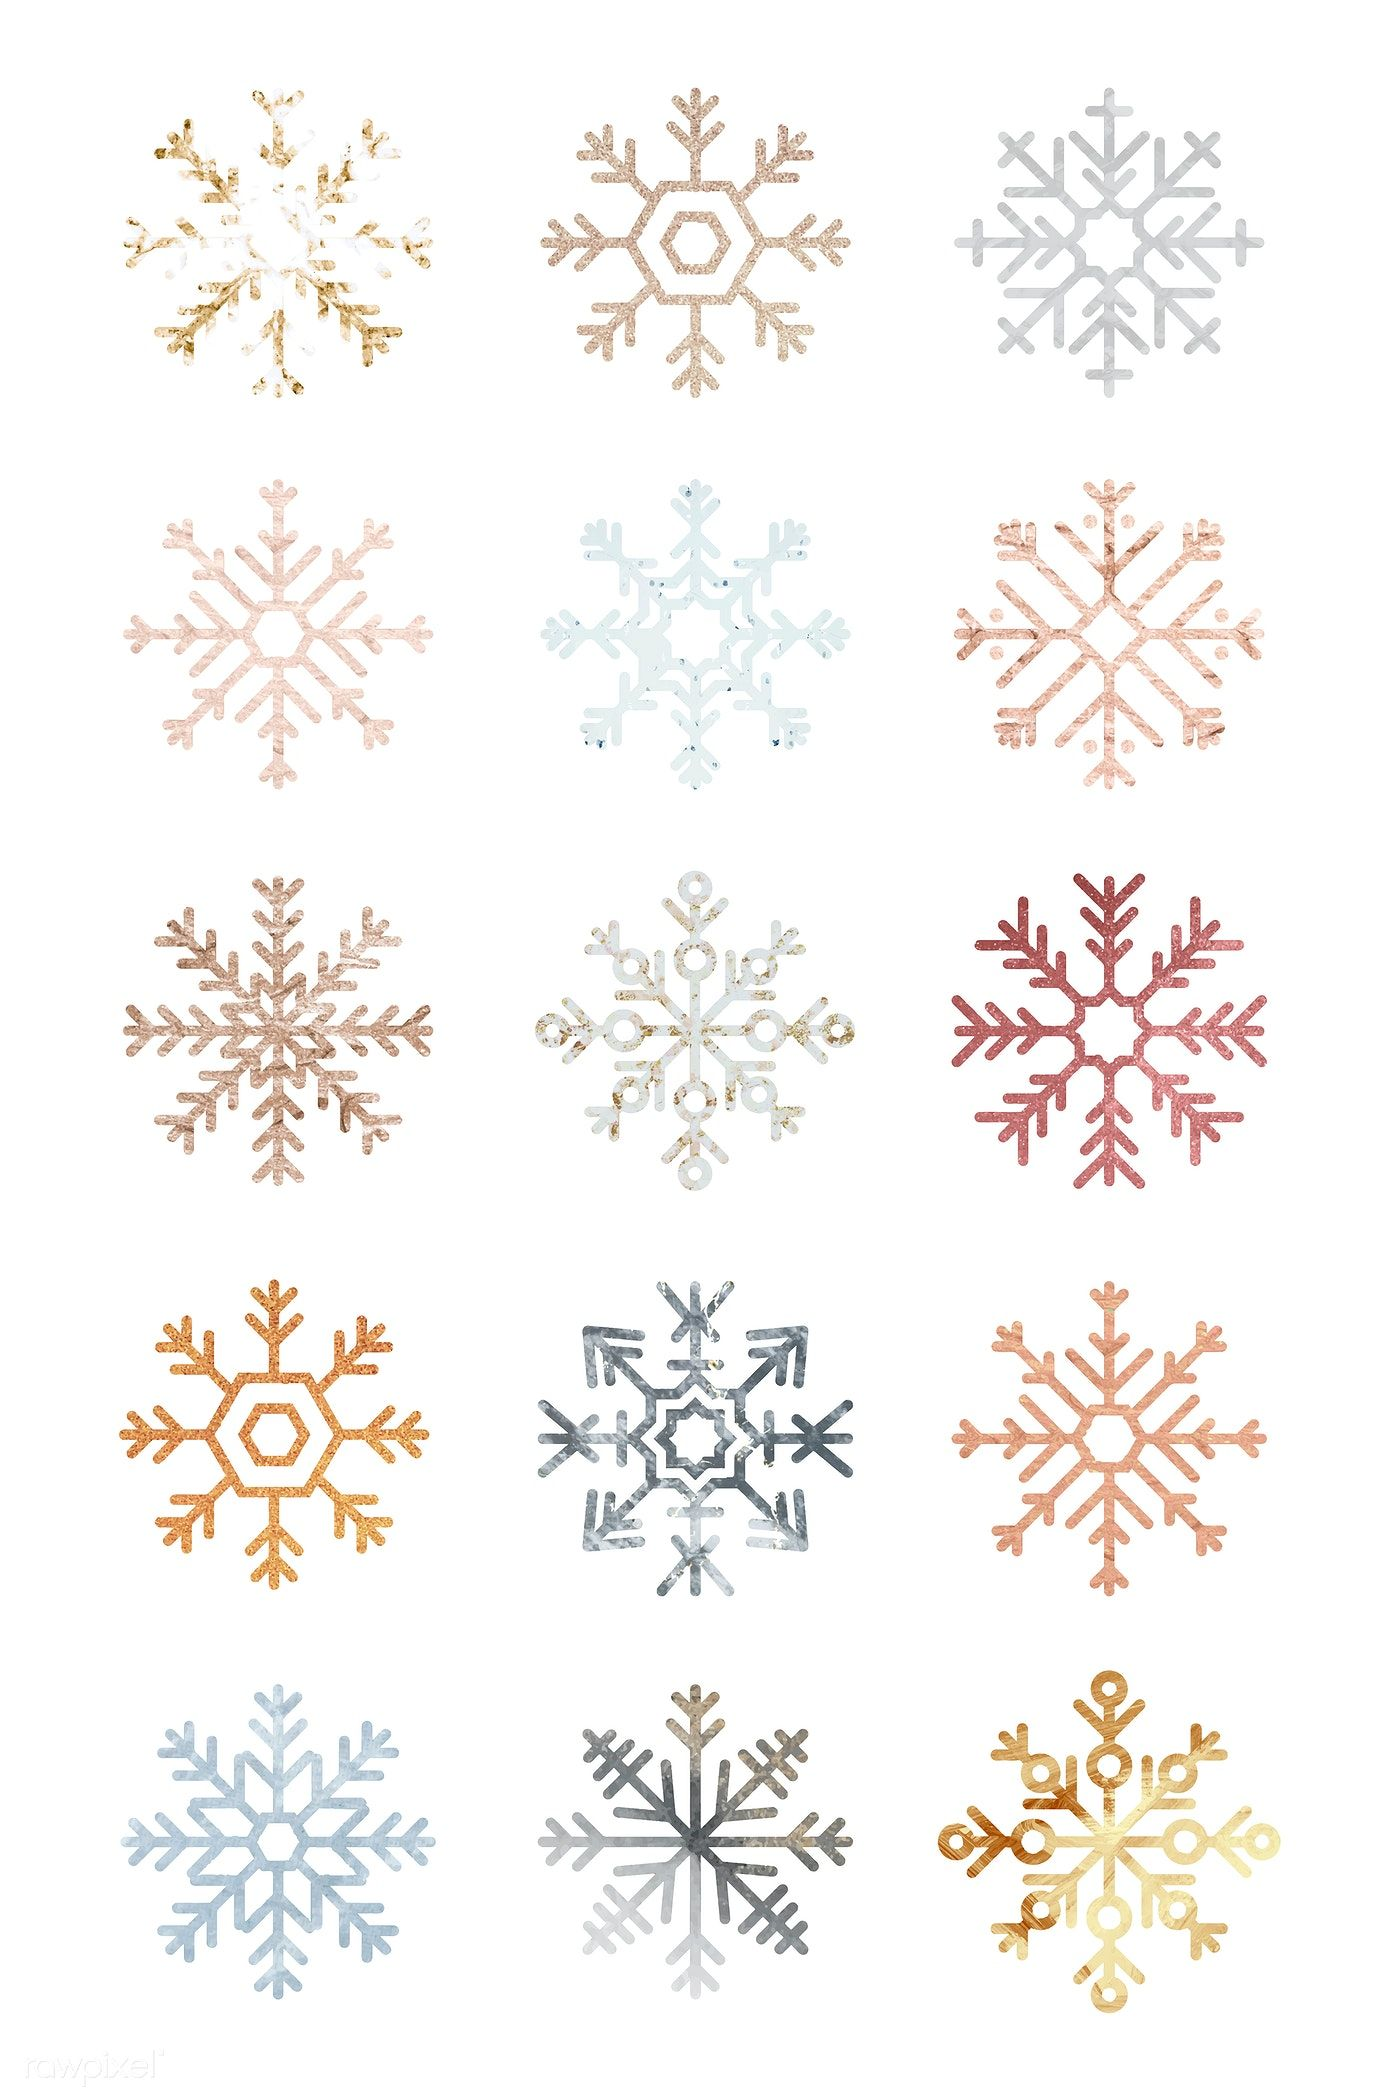 Download premium vector of Christmas snowflakes decorative